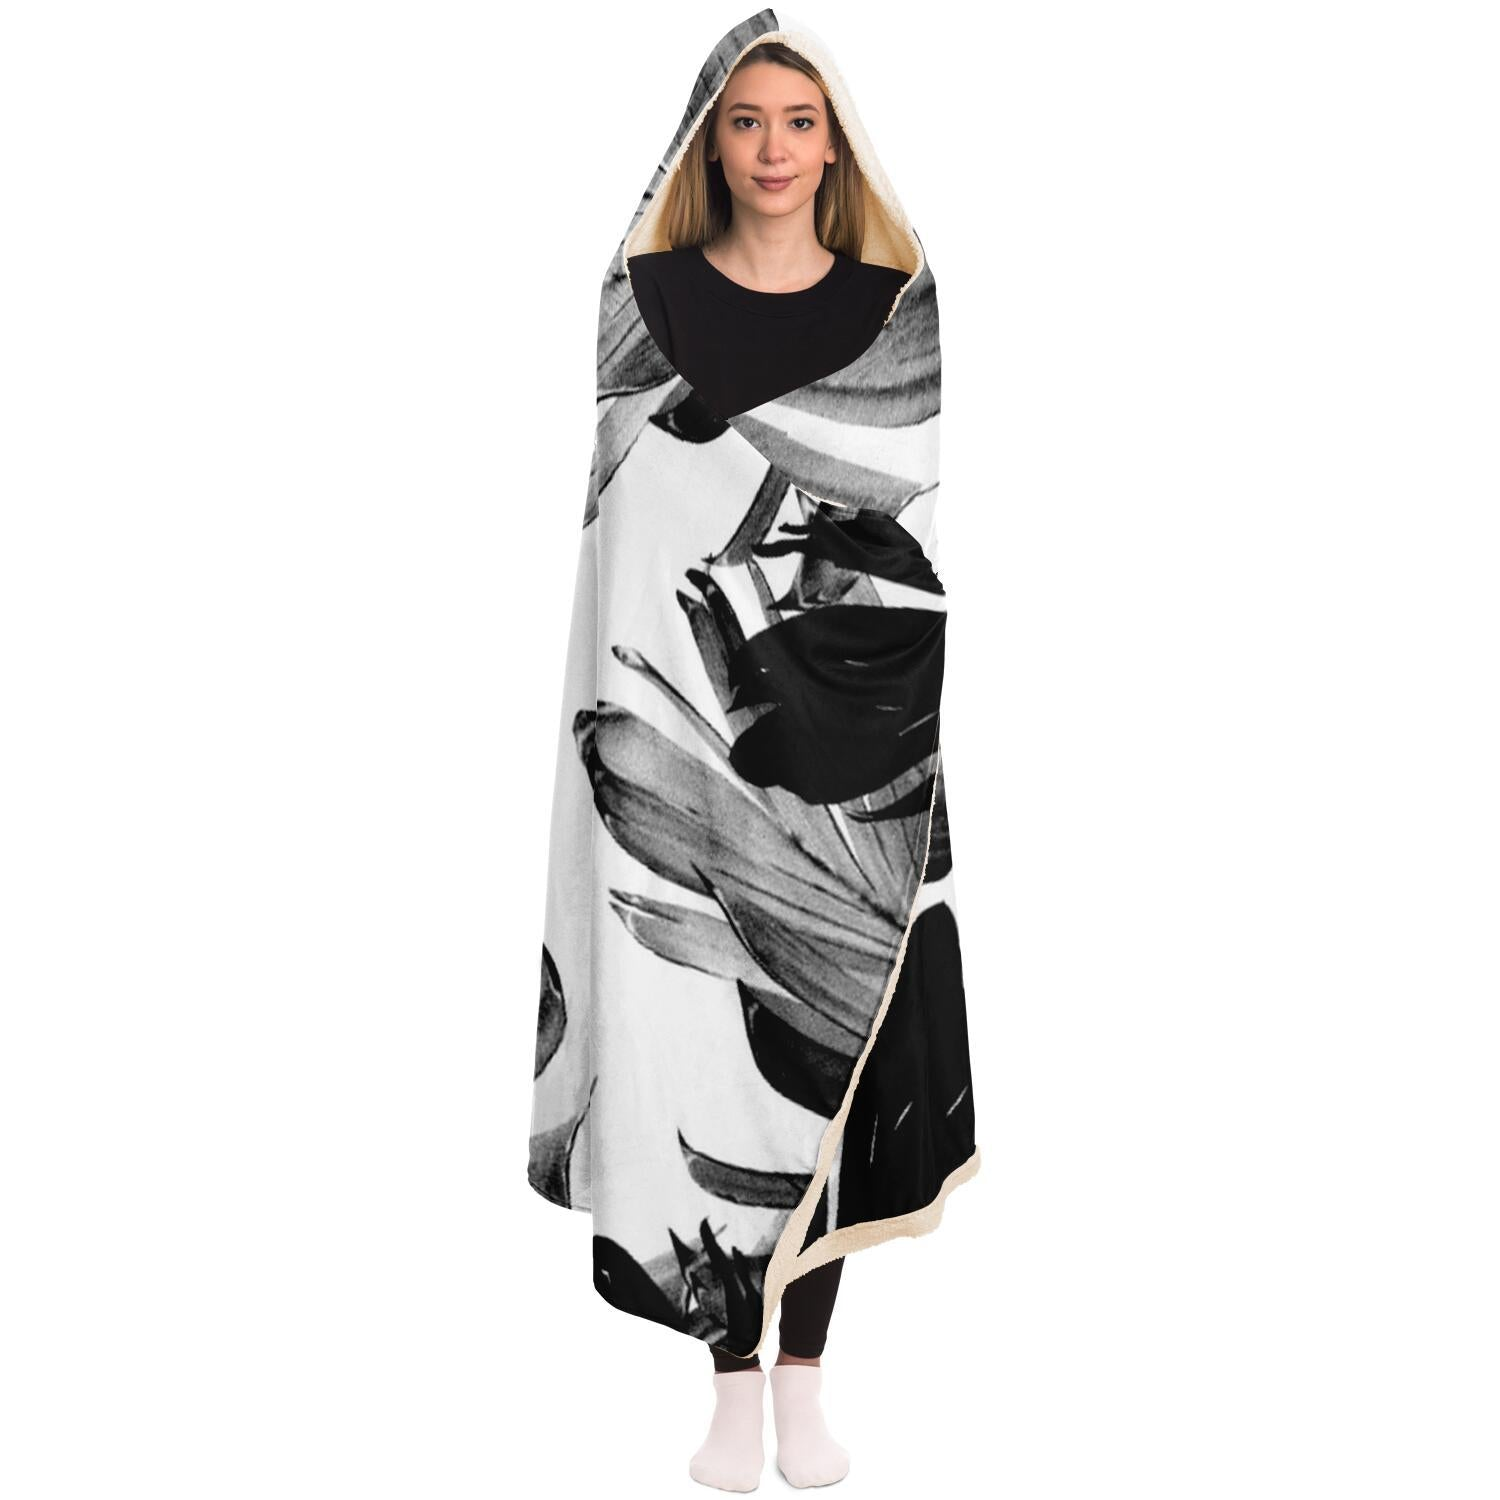 Tropical Banana Leaves Pattern Hooded Blanket